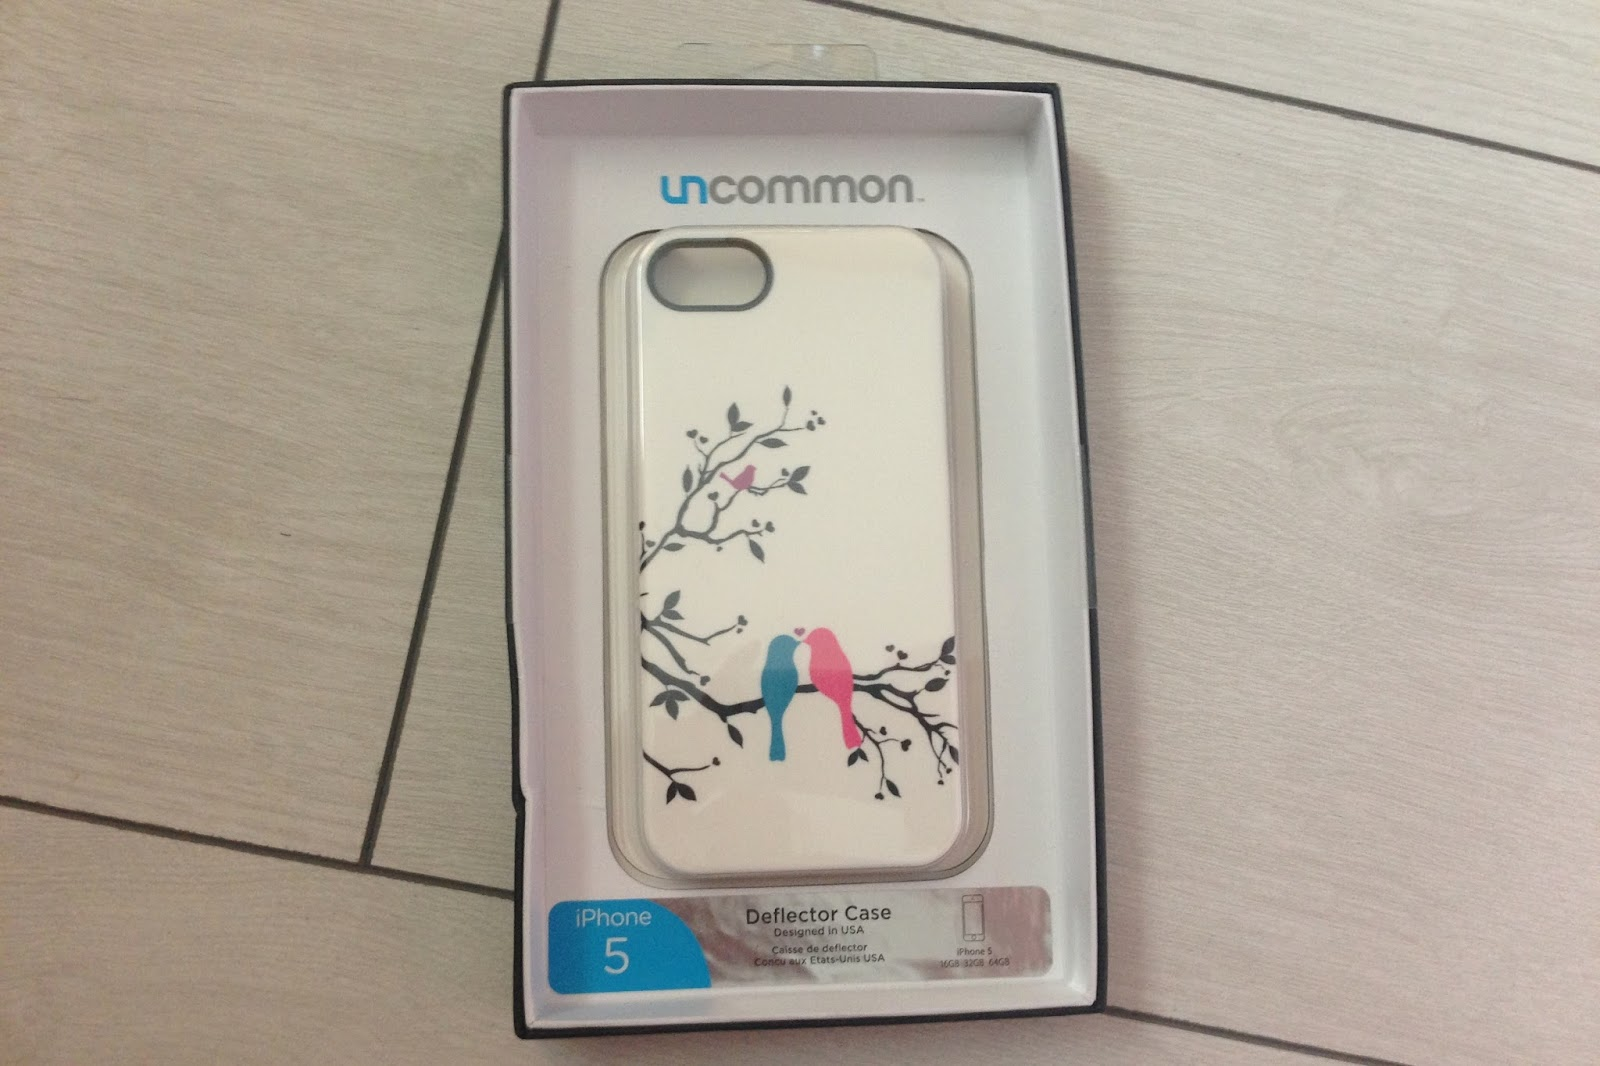 Uncommon Iphone Case Review